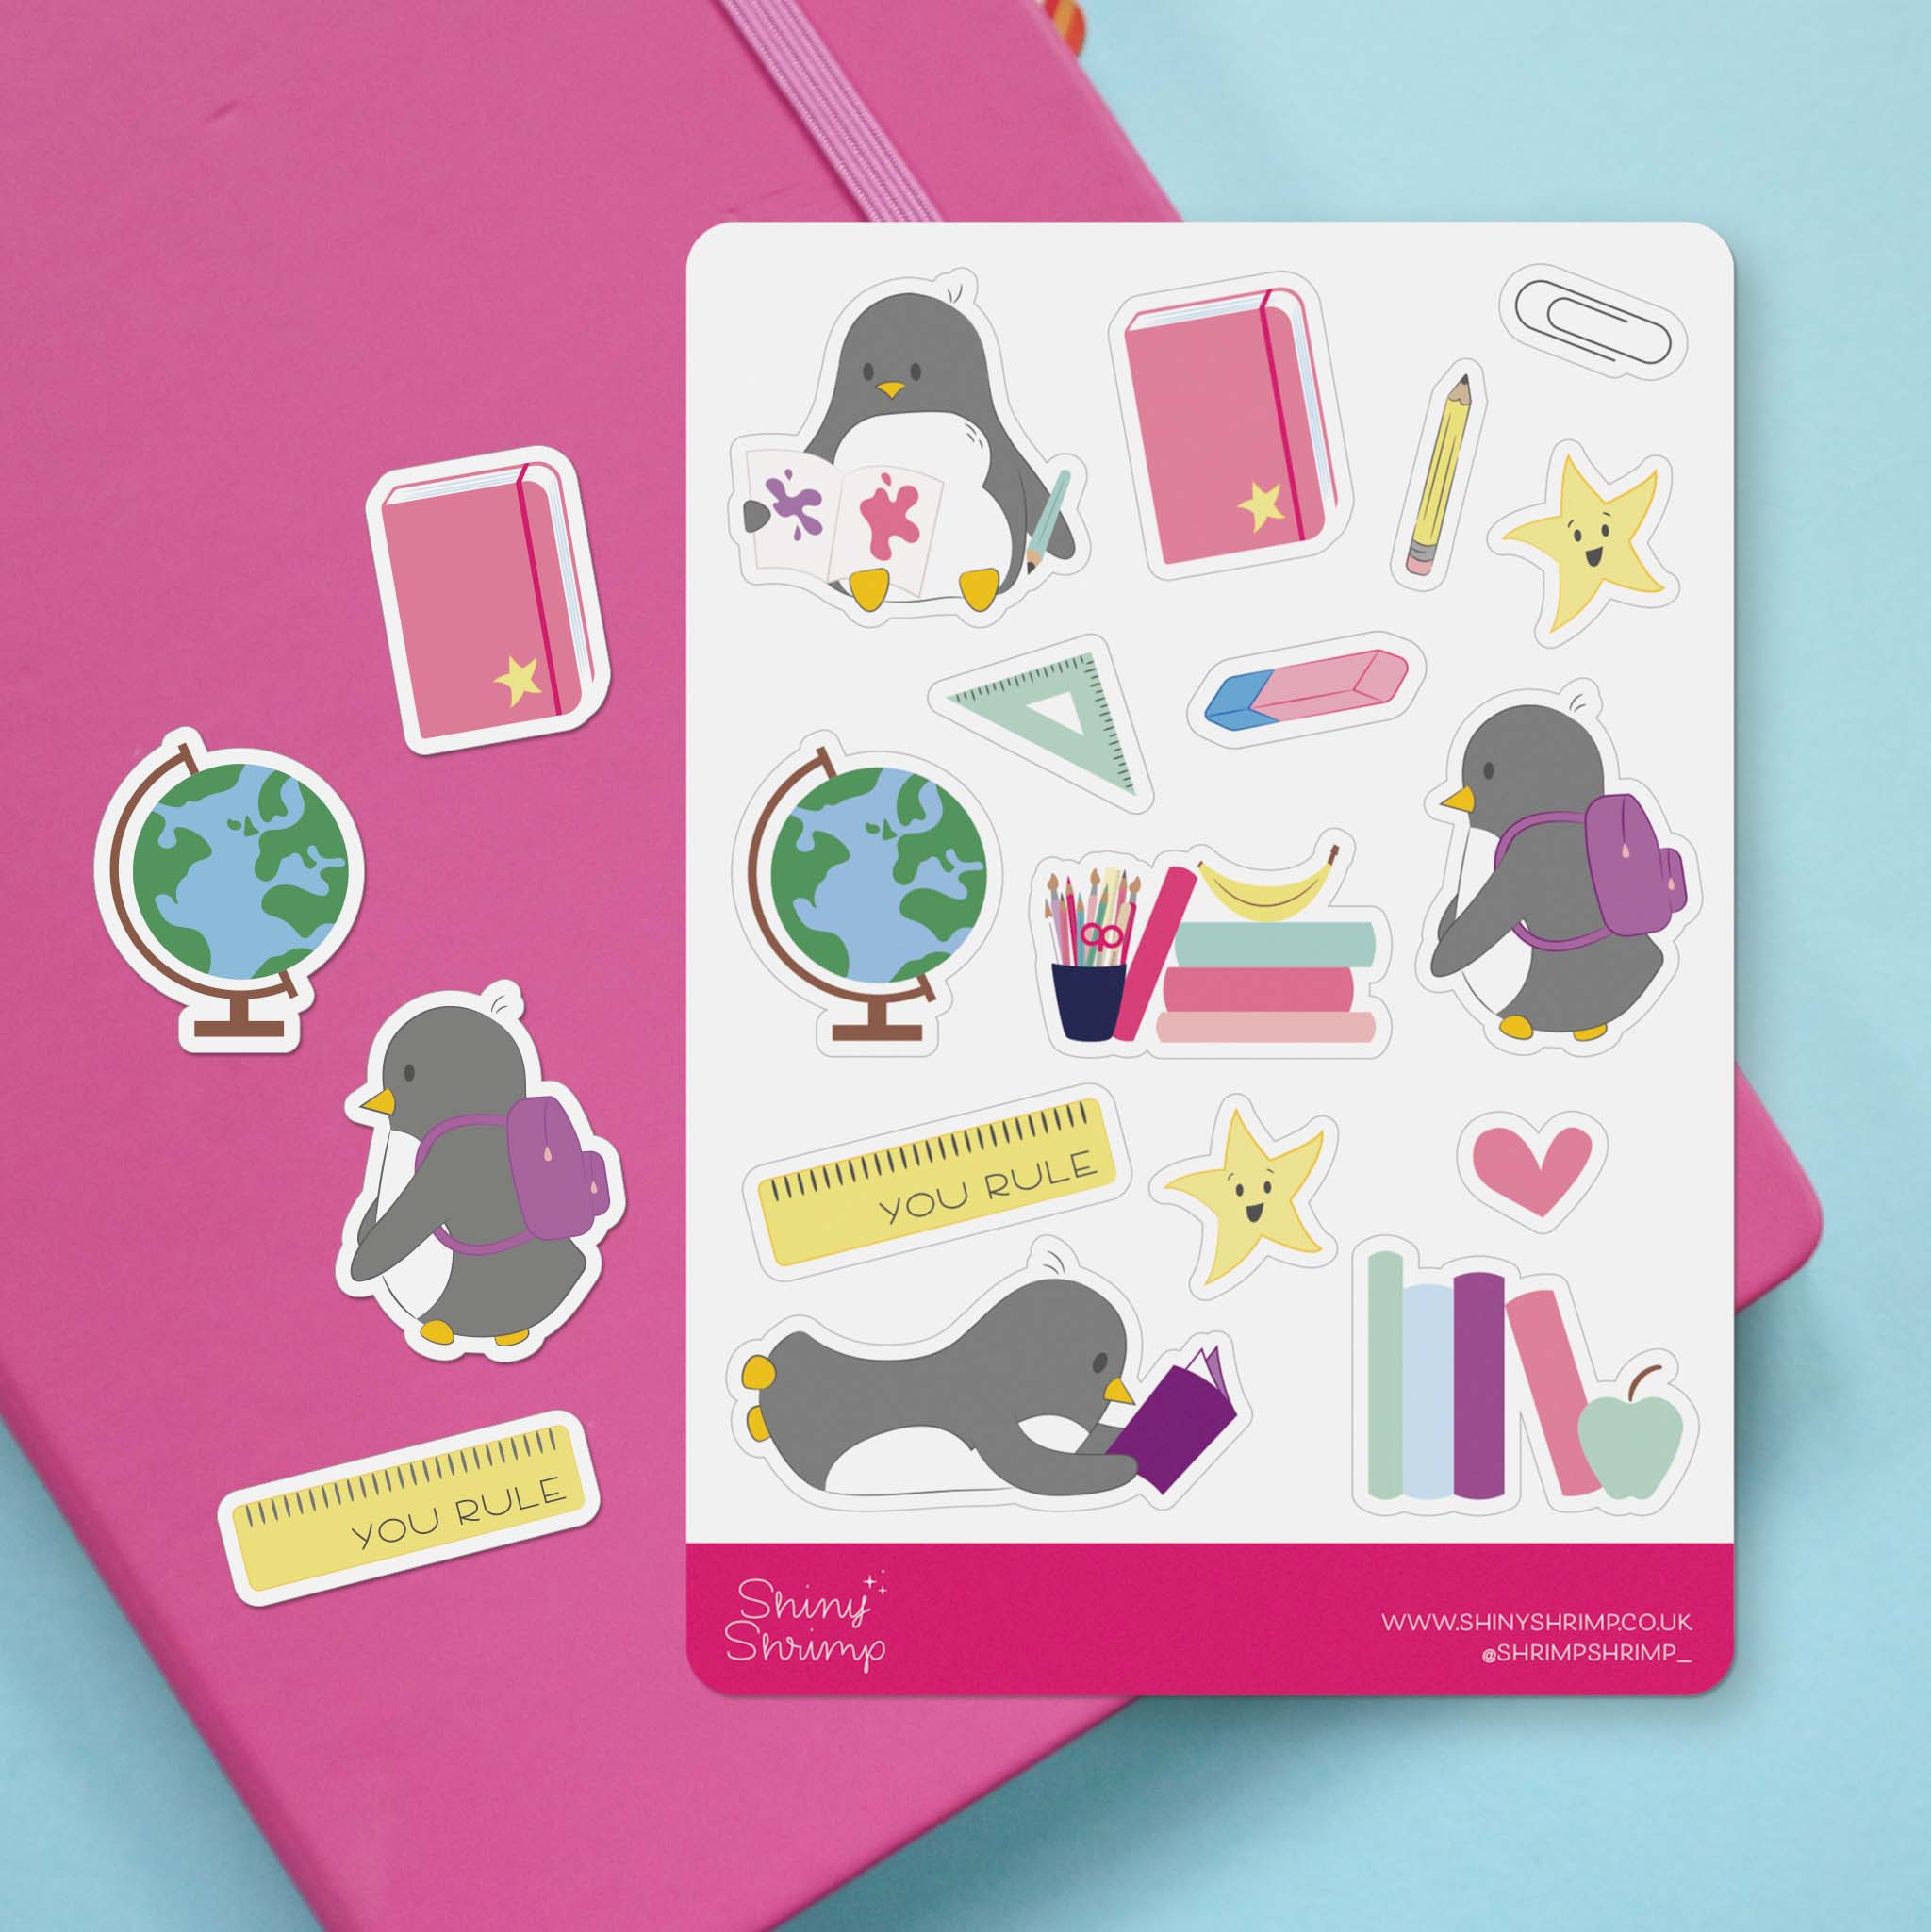 A back to school themed penguin sticker sheet with cute illustrations around the theme of back to school. It sits against a pink and blue background.